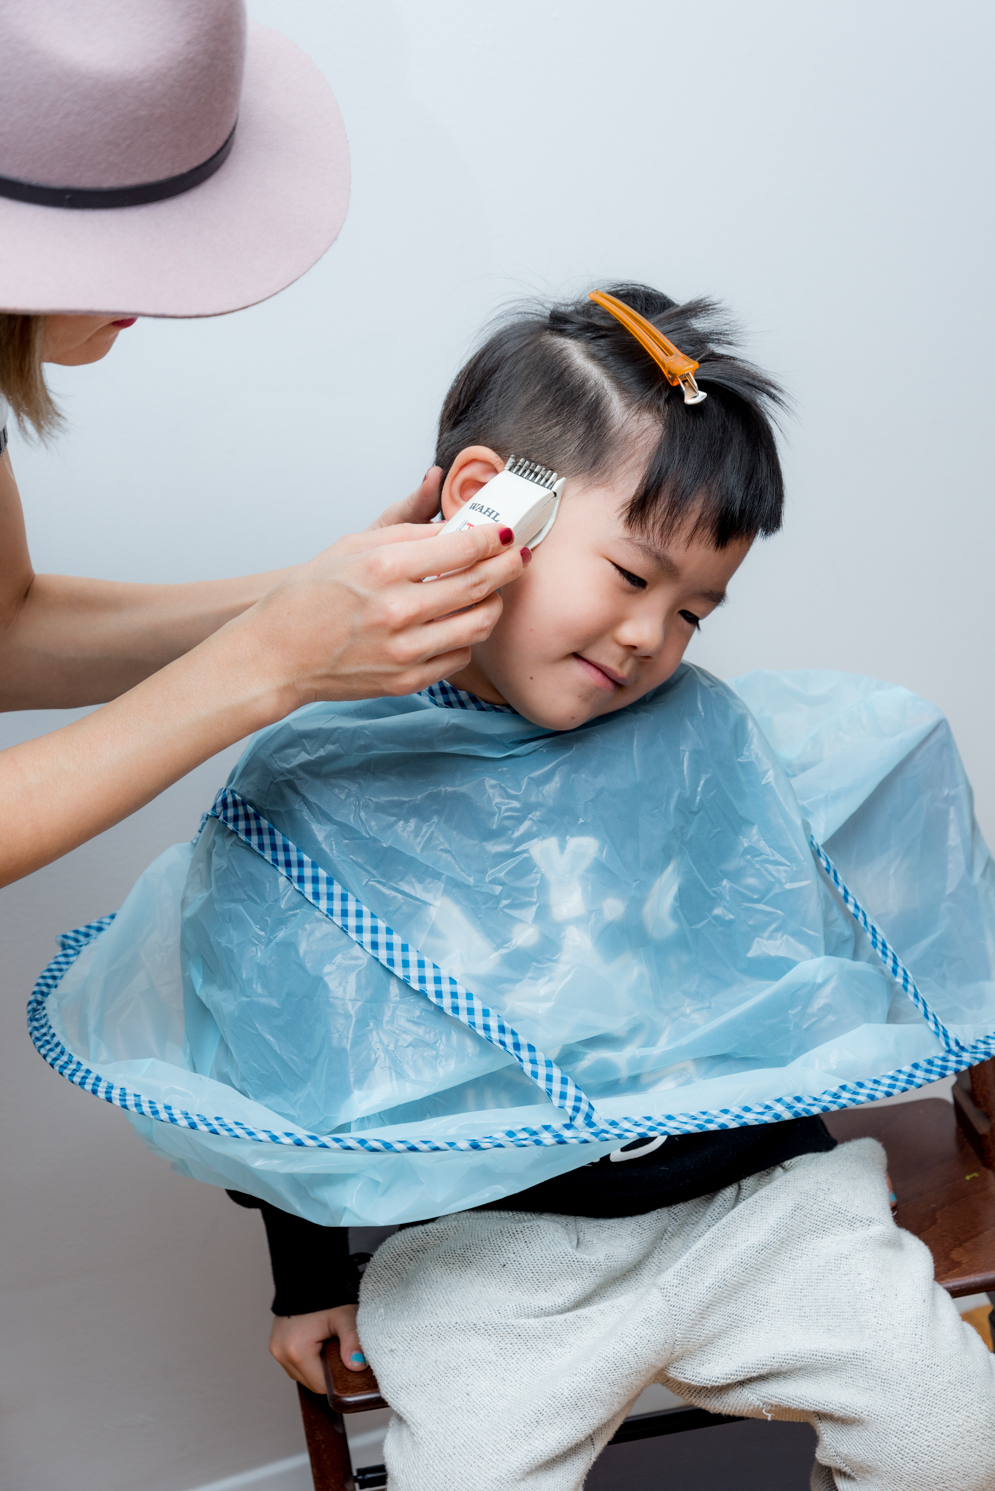 ROCK MAMA NYC LIFESTYLE BLOG - GOOD TOOLS FOR A KIDS HAIRCUT AT HOME